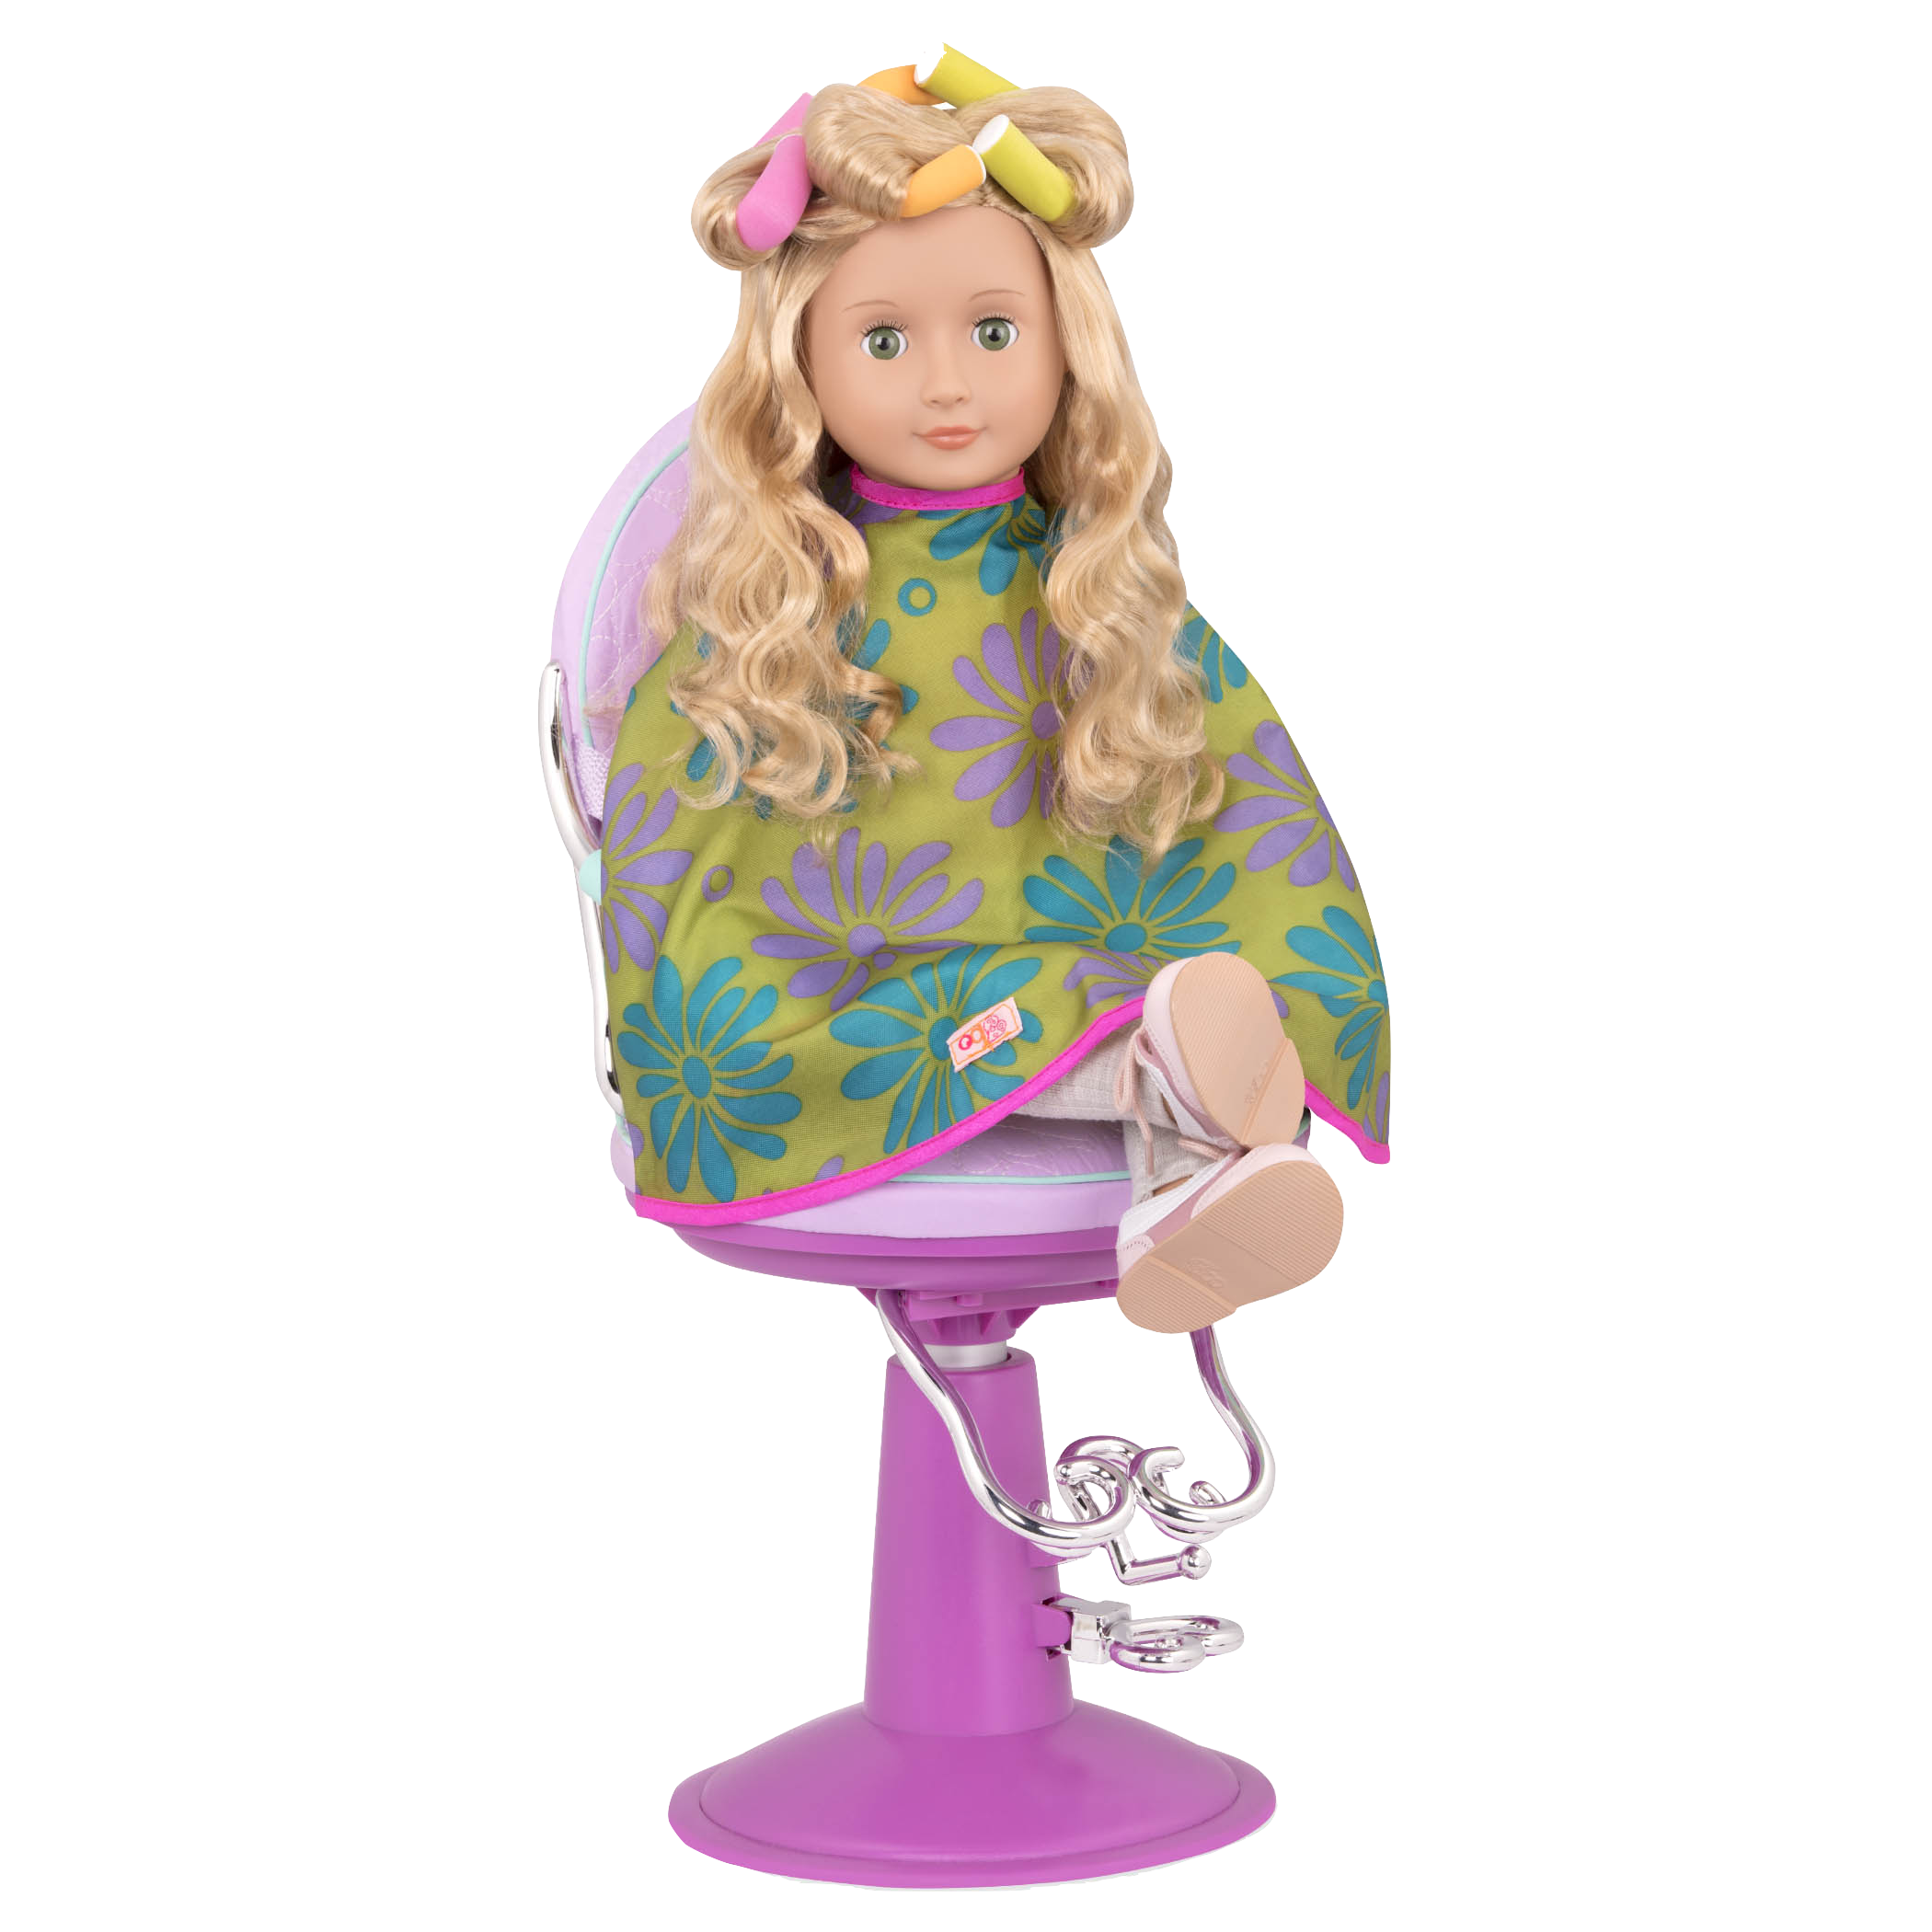 Lets hear It For the Curl Jenny doll wearing hair curlers